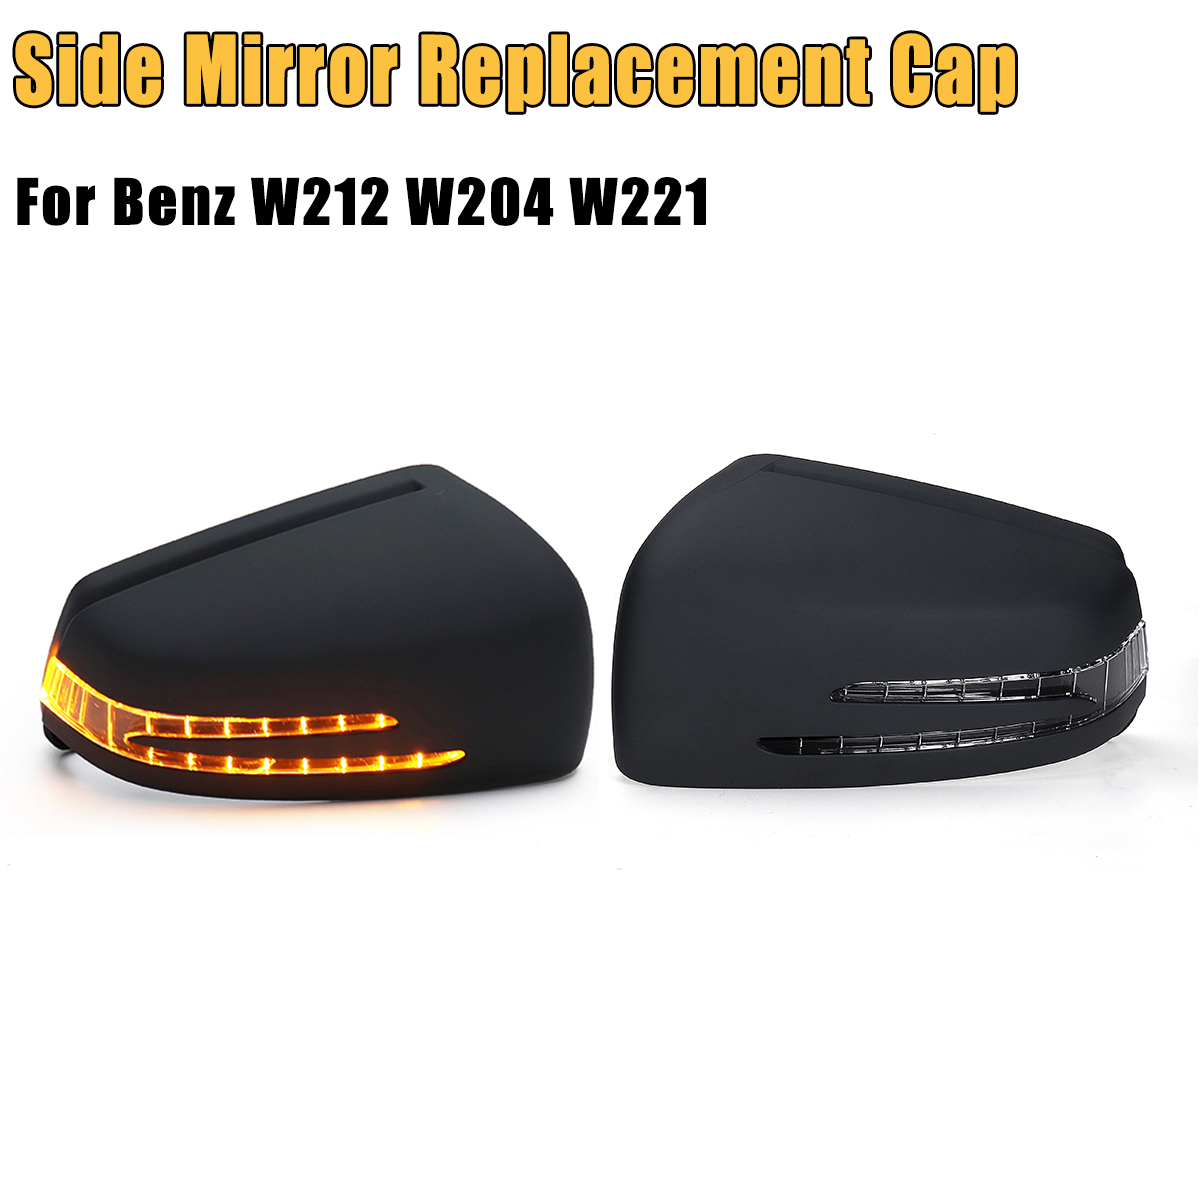 Unpainted Grey Car Door Rearview Side Mirror Replacement Cover Cap with LED Turn Signal Light Lamp For Benz W212 W204 W221